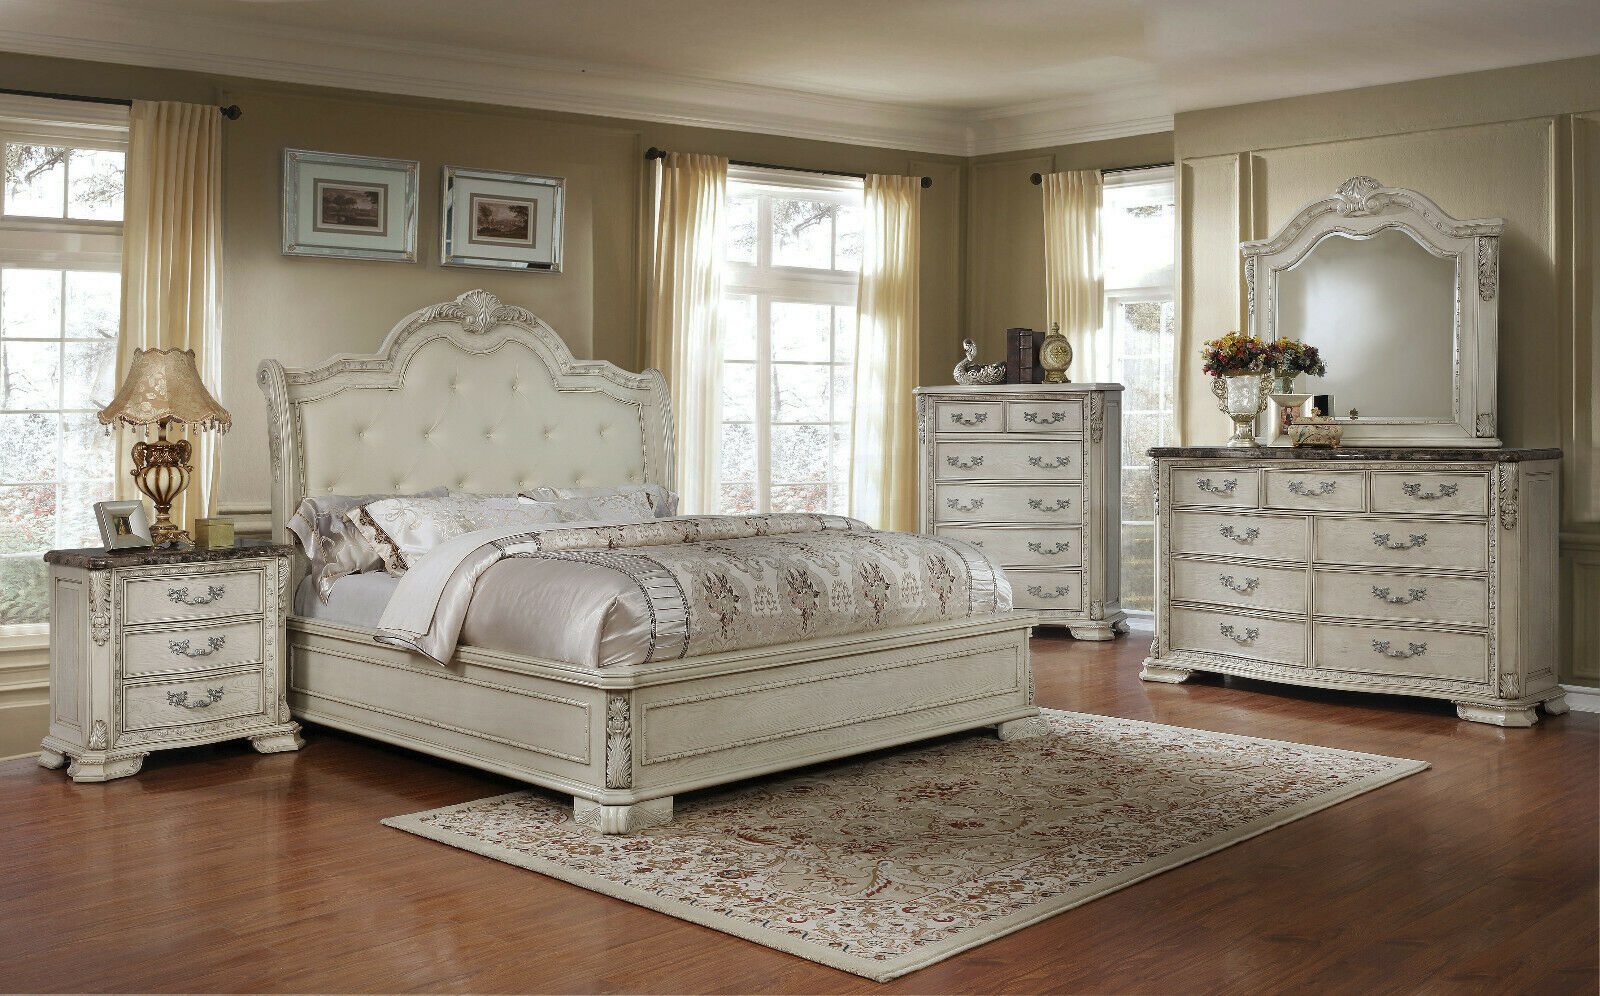 Details about 4 Pc Traditional King Bedroom Set Cream Leather Carved  Accents Marble Tops